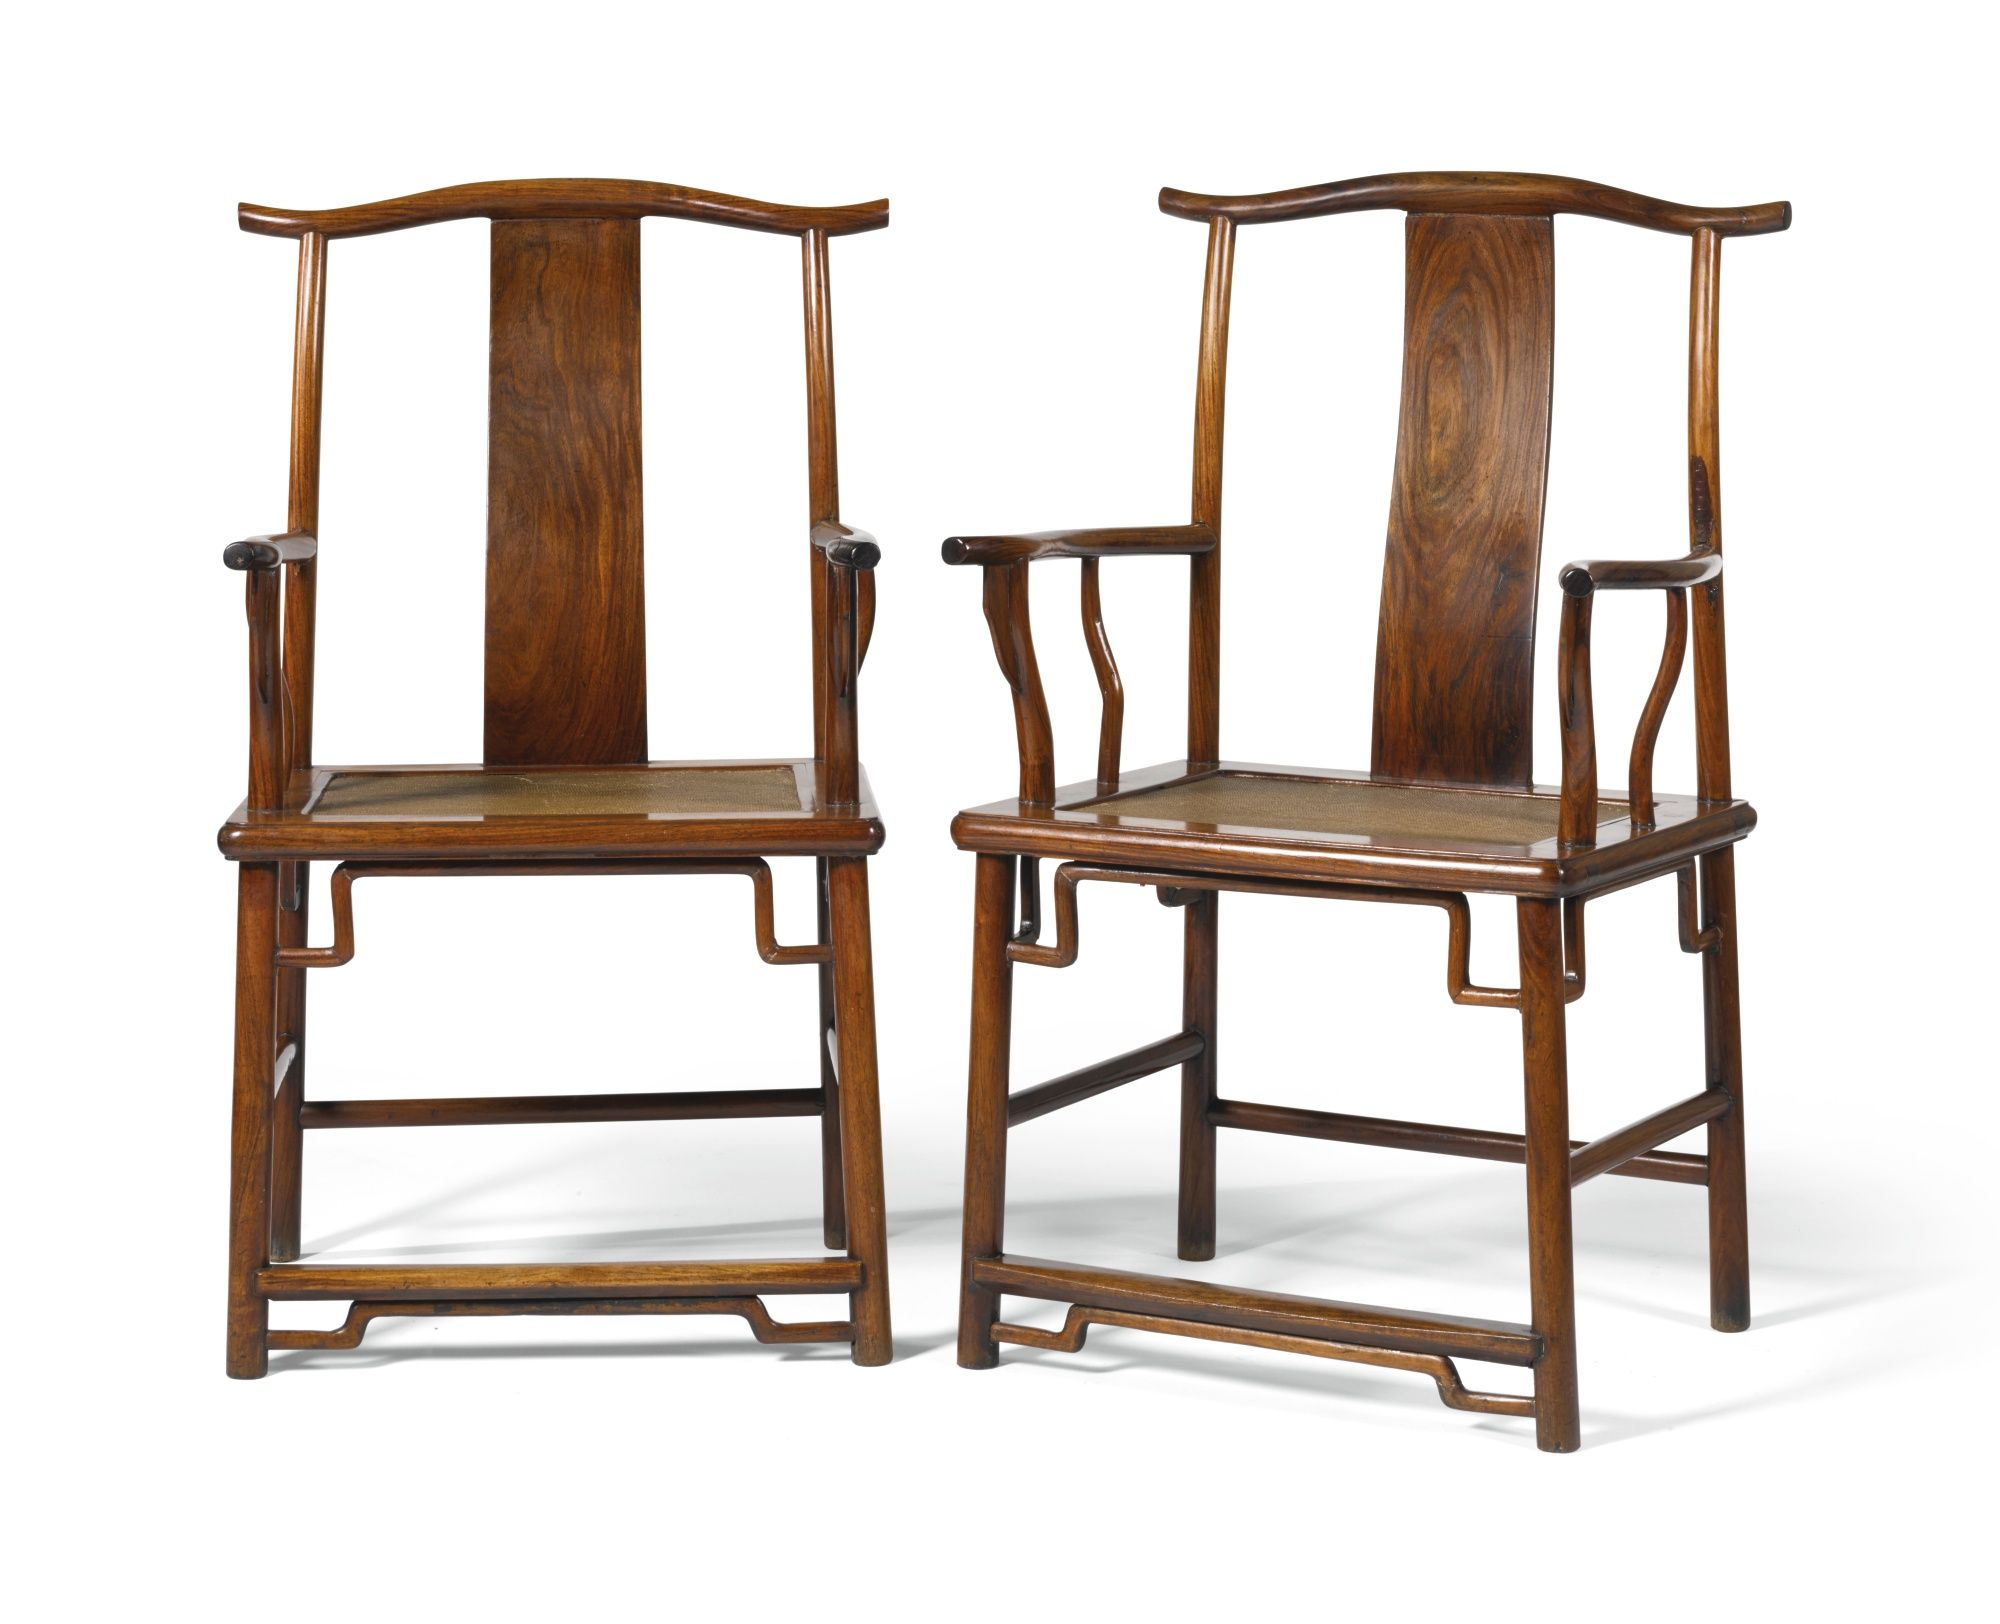 A Pair Of Huanghuali Official S Hat Yokeback Armchairs  # Muebles Dinastia Qing